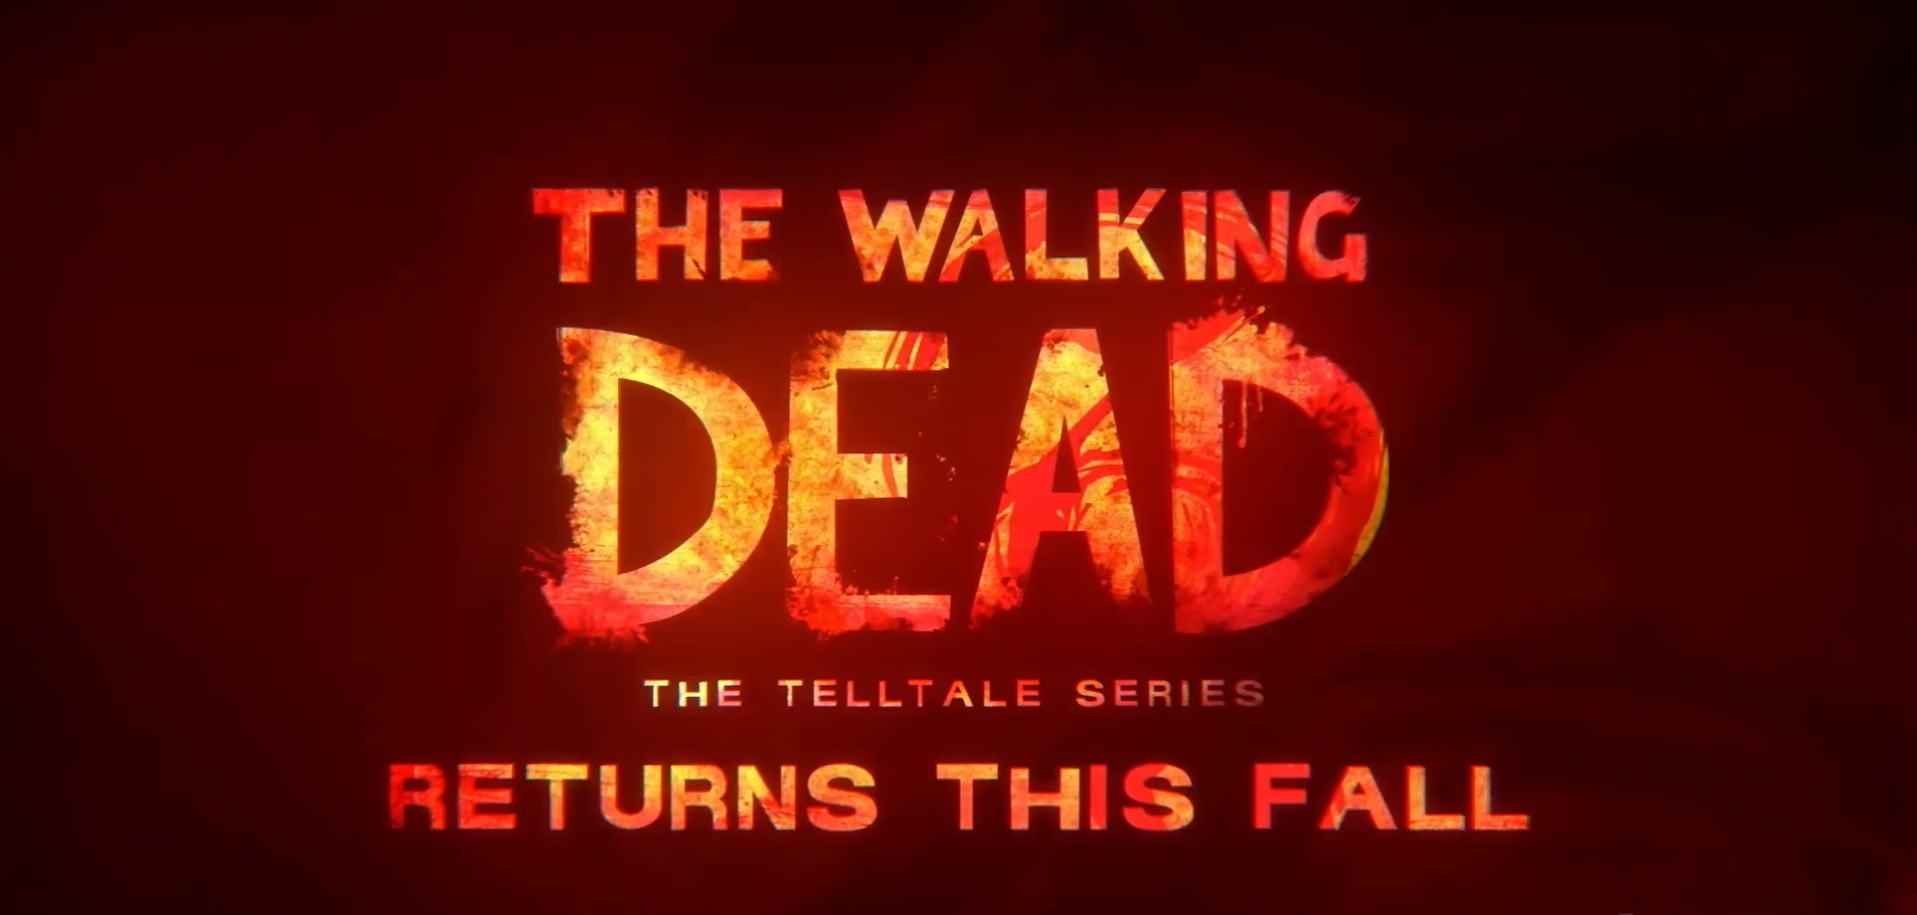 La saison 3 de The Walking Dead se dévoile